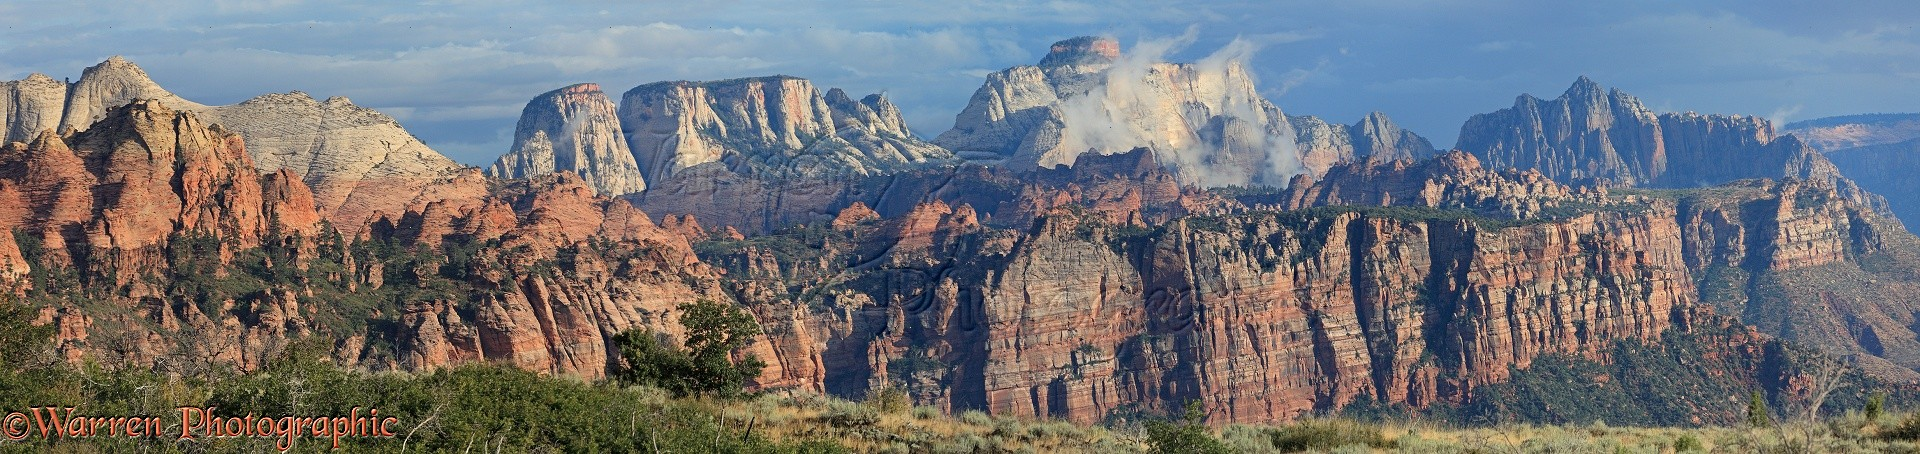 Panoramic Of Rocky Sandstone Mountains And Cliffs Photo